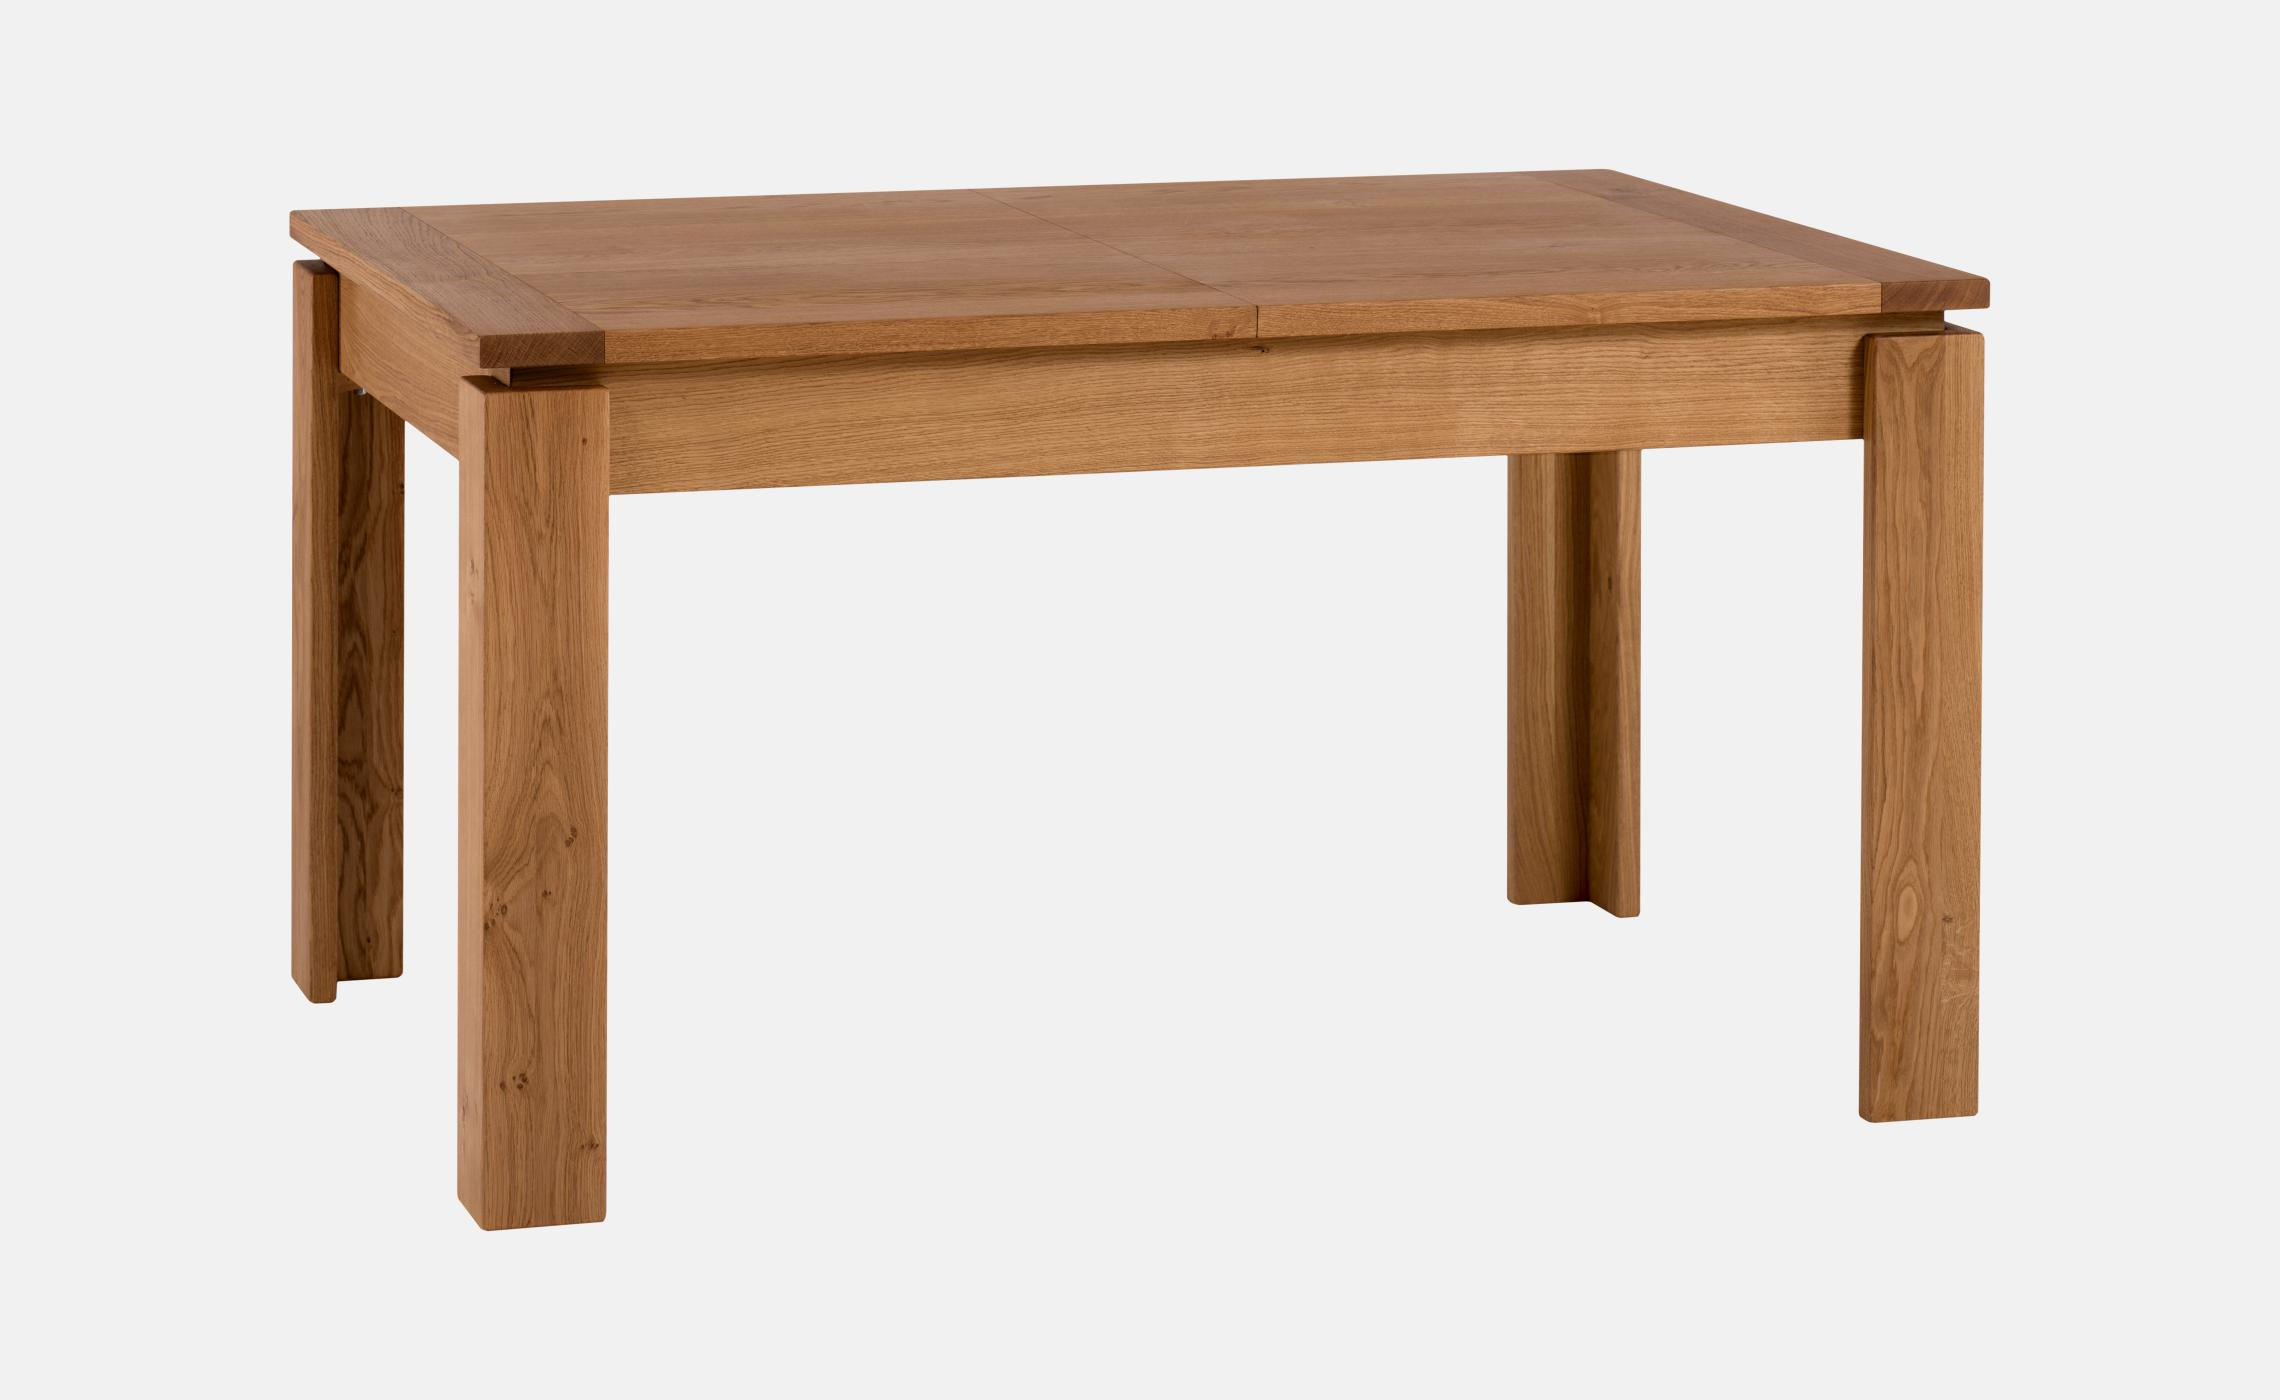 Table moderne allonges en bois massif ch ne avec for Table bois rectangulaire avec allonges